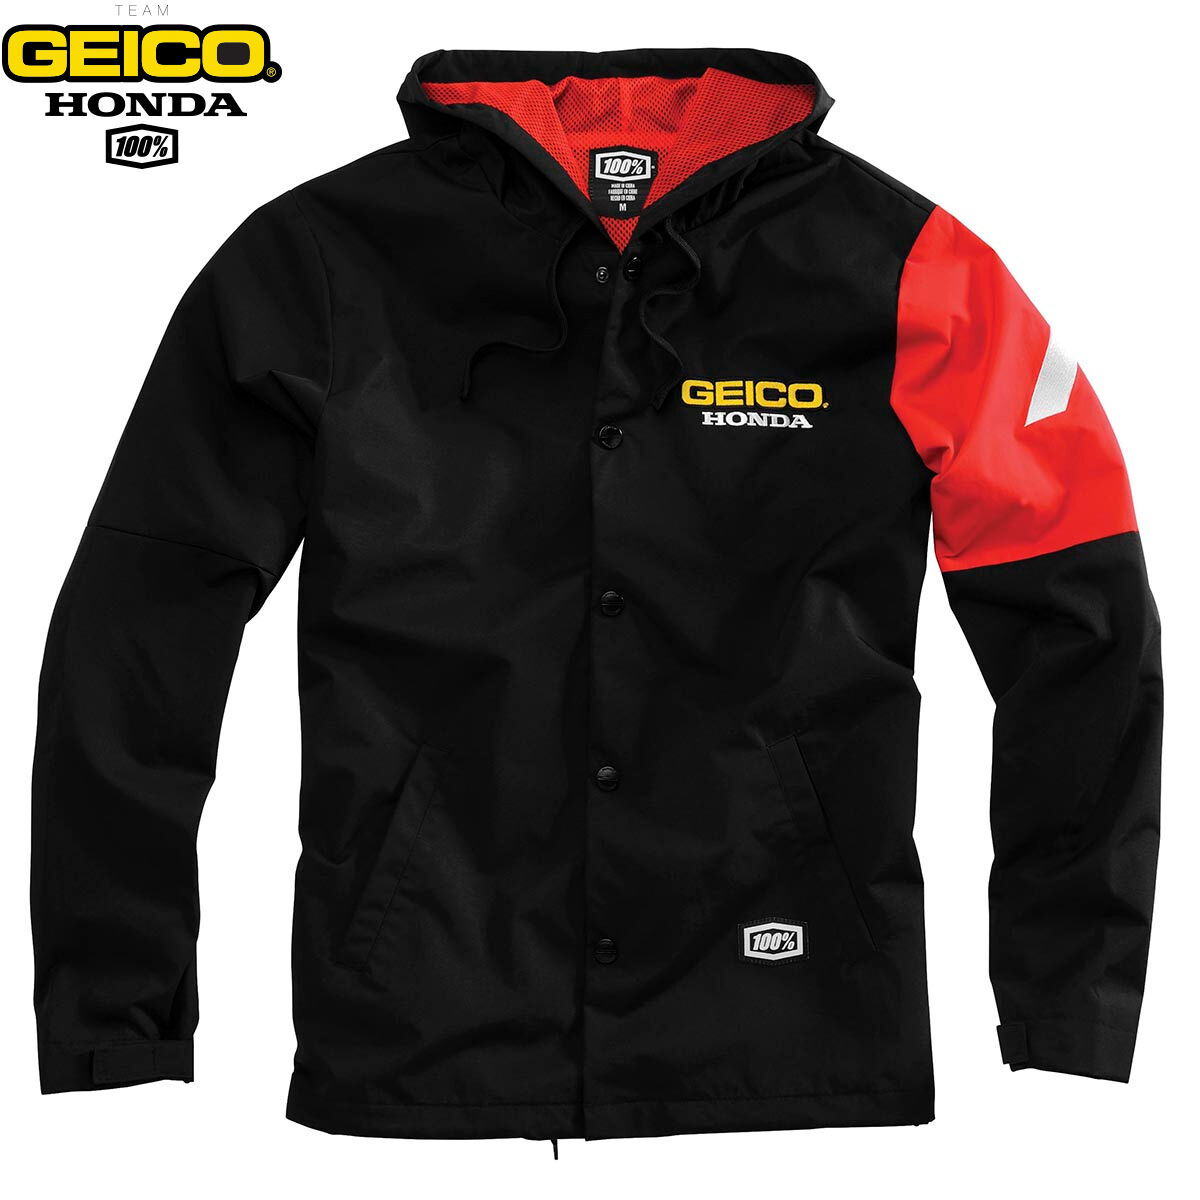 Geico Honda men Flux Giacca con Cappuccio black red Giacca 100% Motocross MX